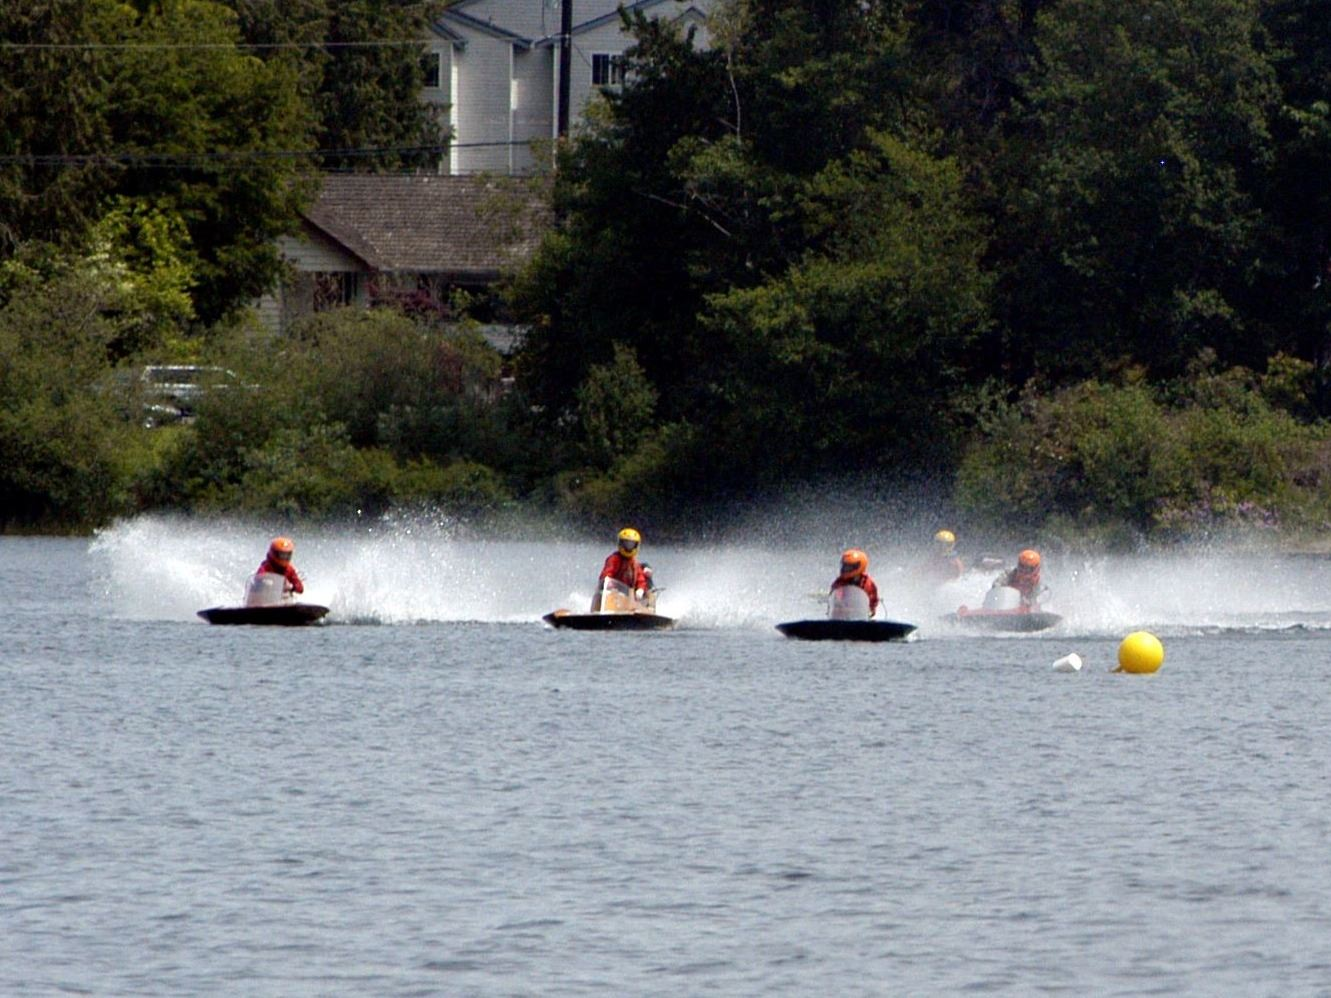 Hydro races at Silver Lake